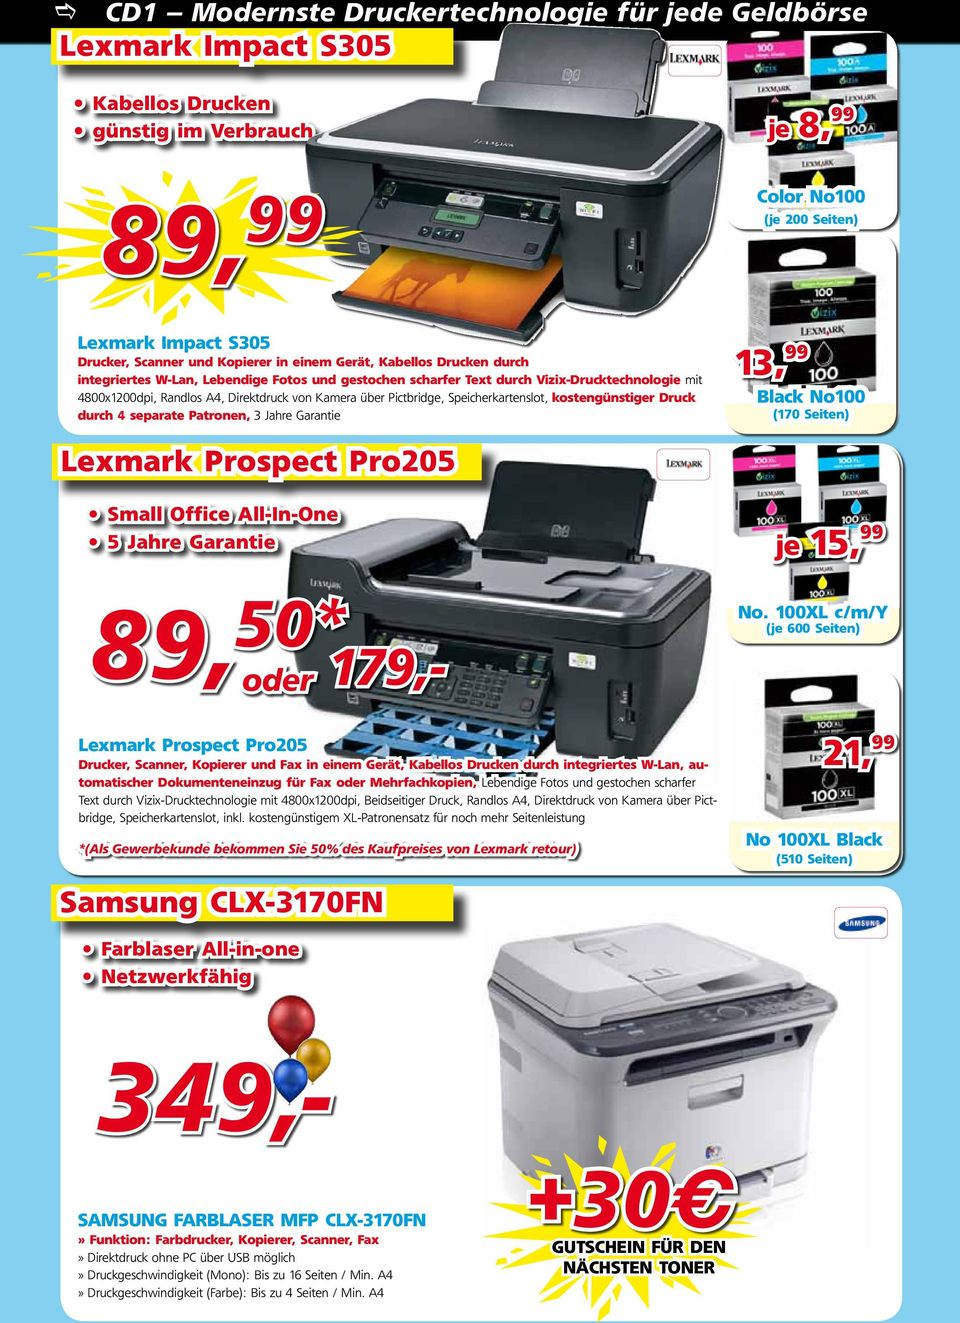 Pictbridge, Speicherkartenslot, kostengünstiger Druck durch 4 separate Patronen, 3 Jahre Garantie 13, 99 Black No100 (170 Seiten) Lexmark Prospect Pro205 Small Office All-In-One 5 Jahre Garantie je